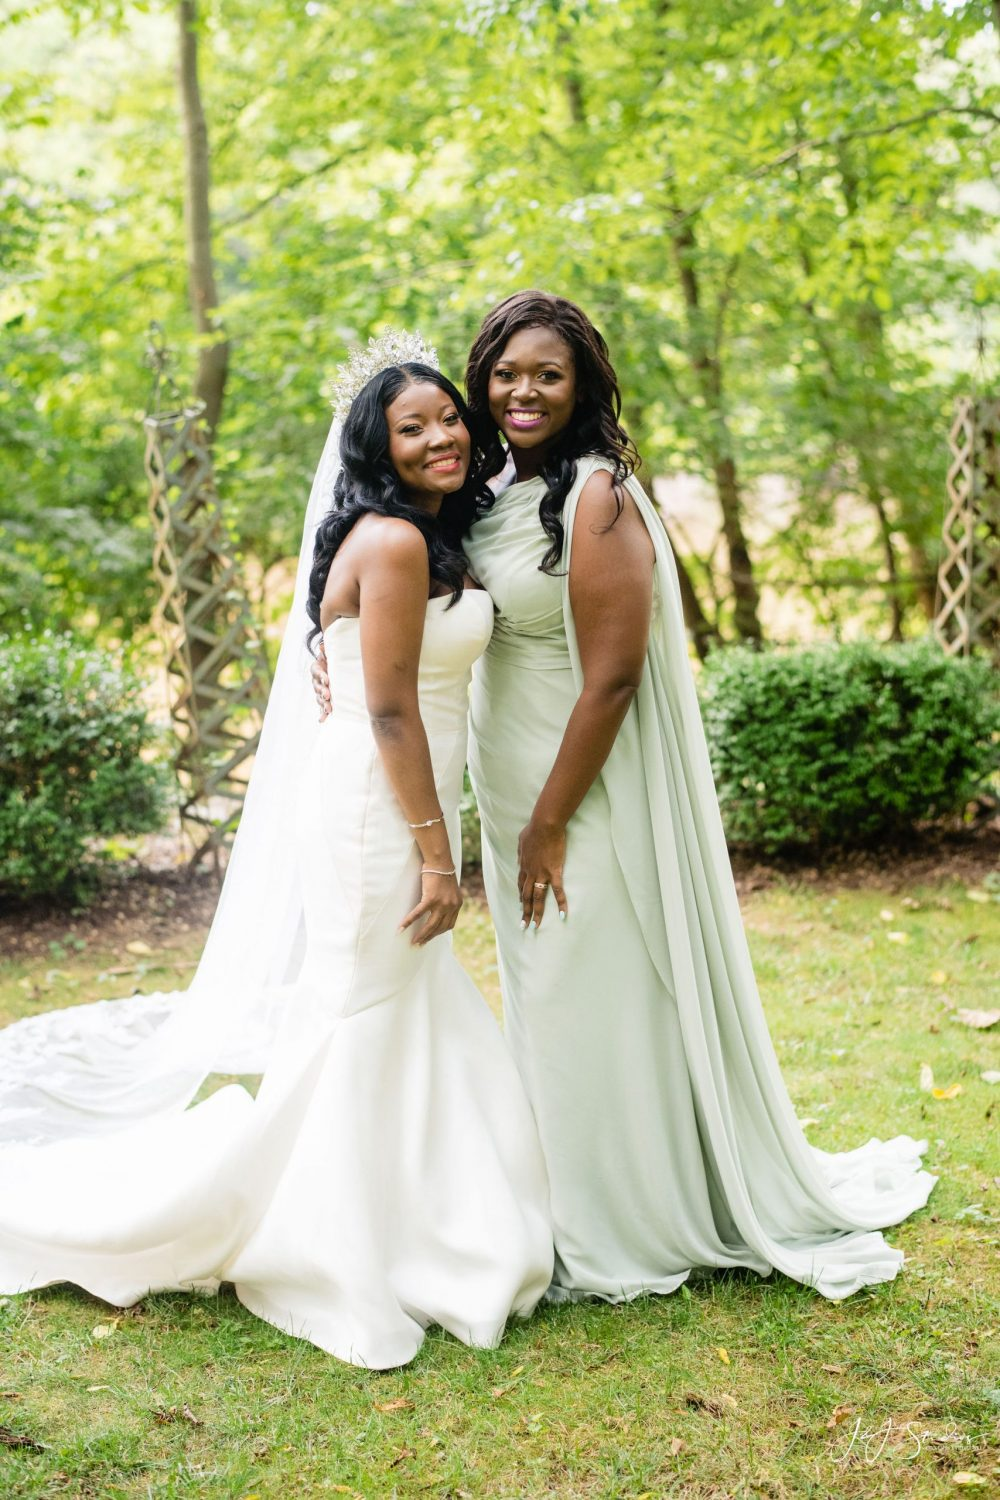 Mom and daughter must have wedding photos